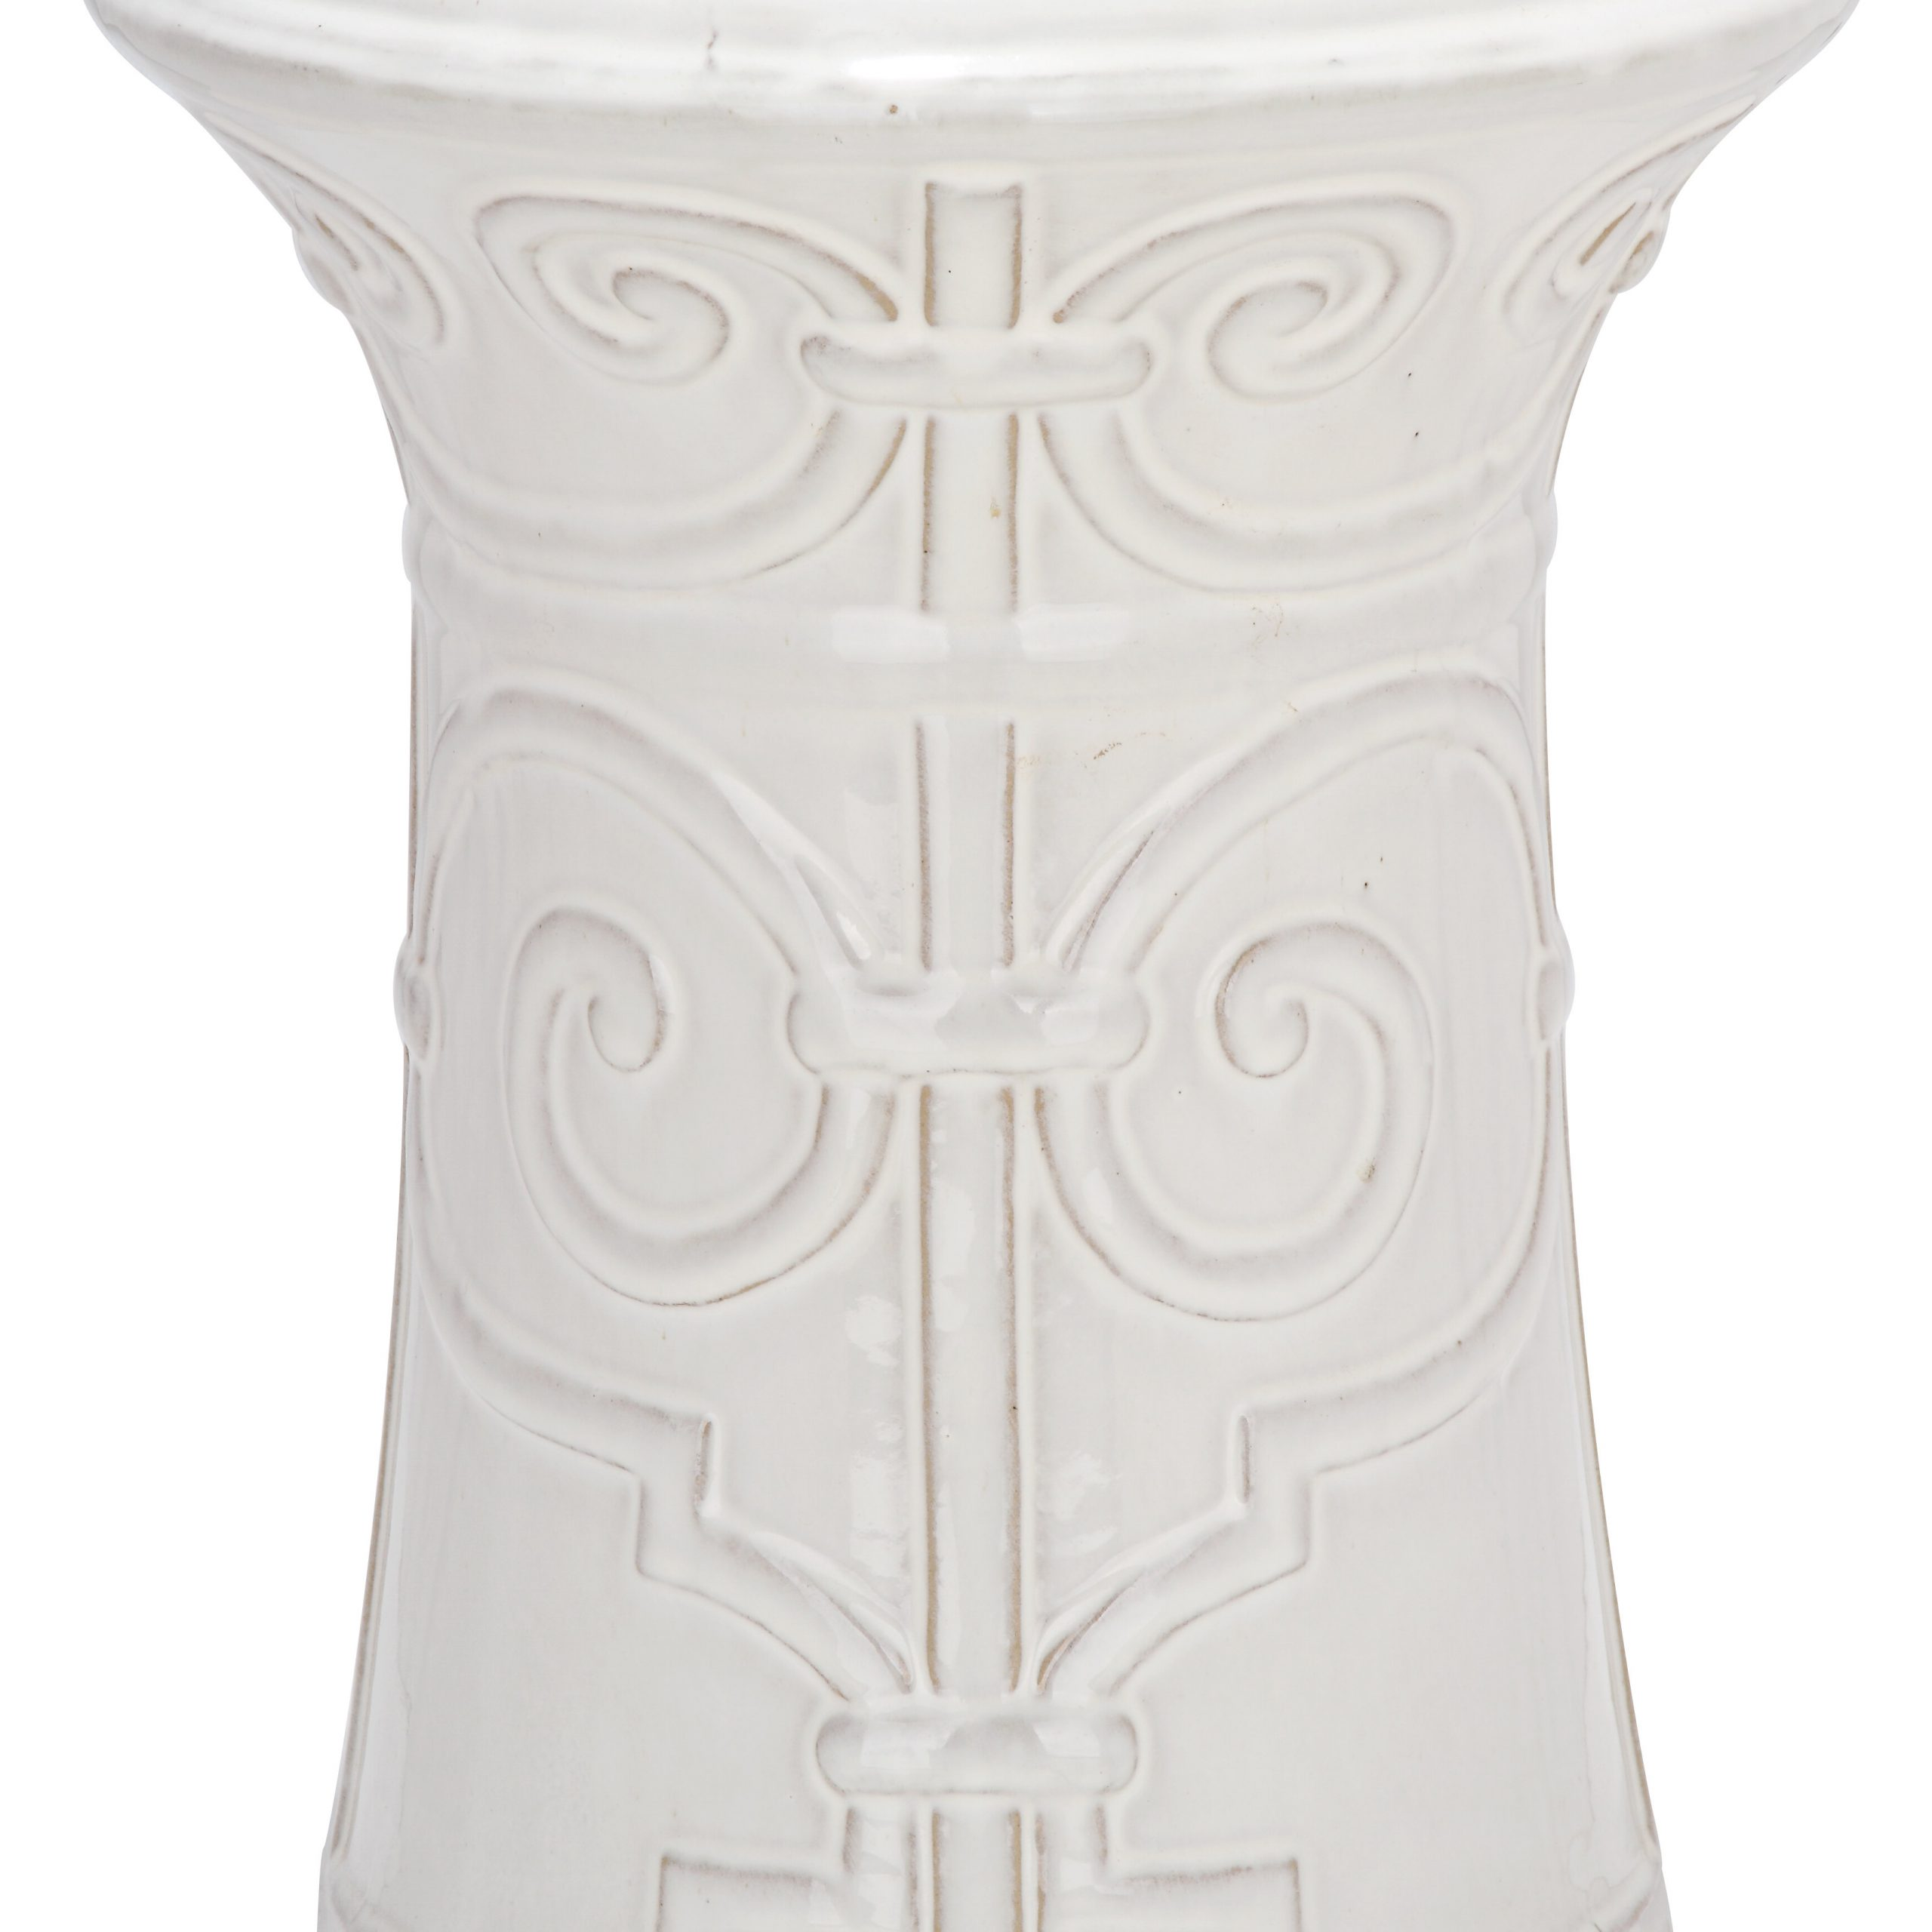 Most Recent Winterview Garden Stools Pertaining To Imperial Ceramic Garden Stool (View 12 of 30)